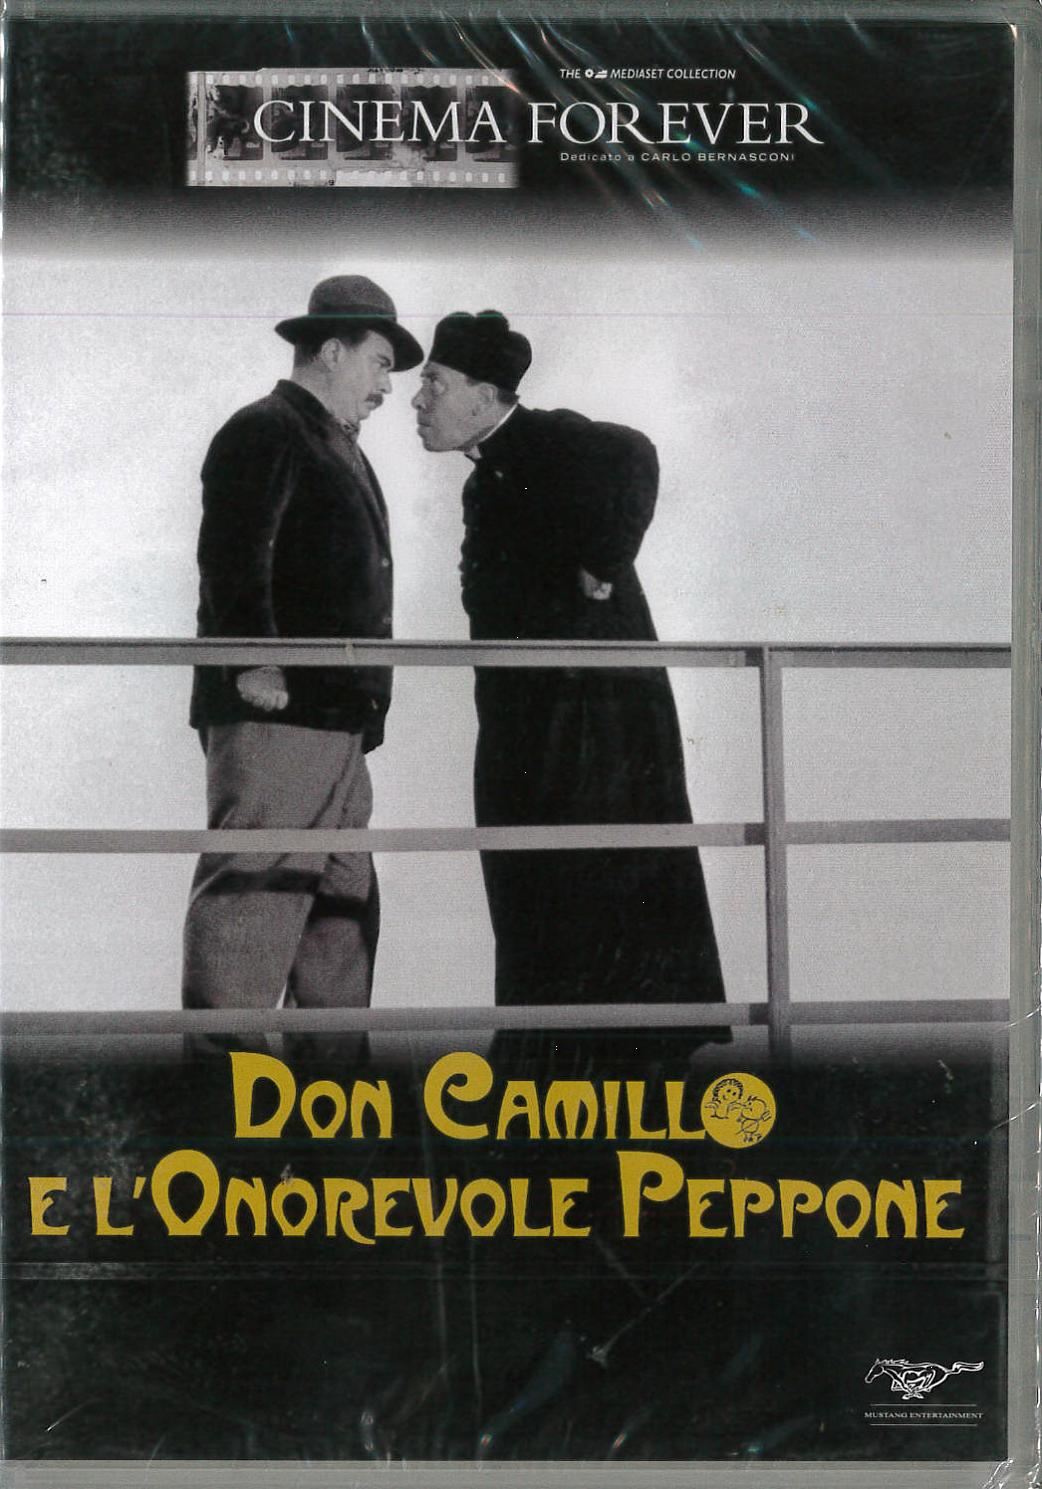 DON CAMILLO E L'ONOREVOLE PEPPONE (DVD)